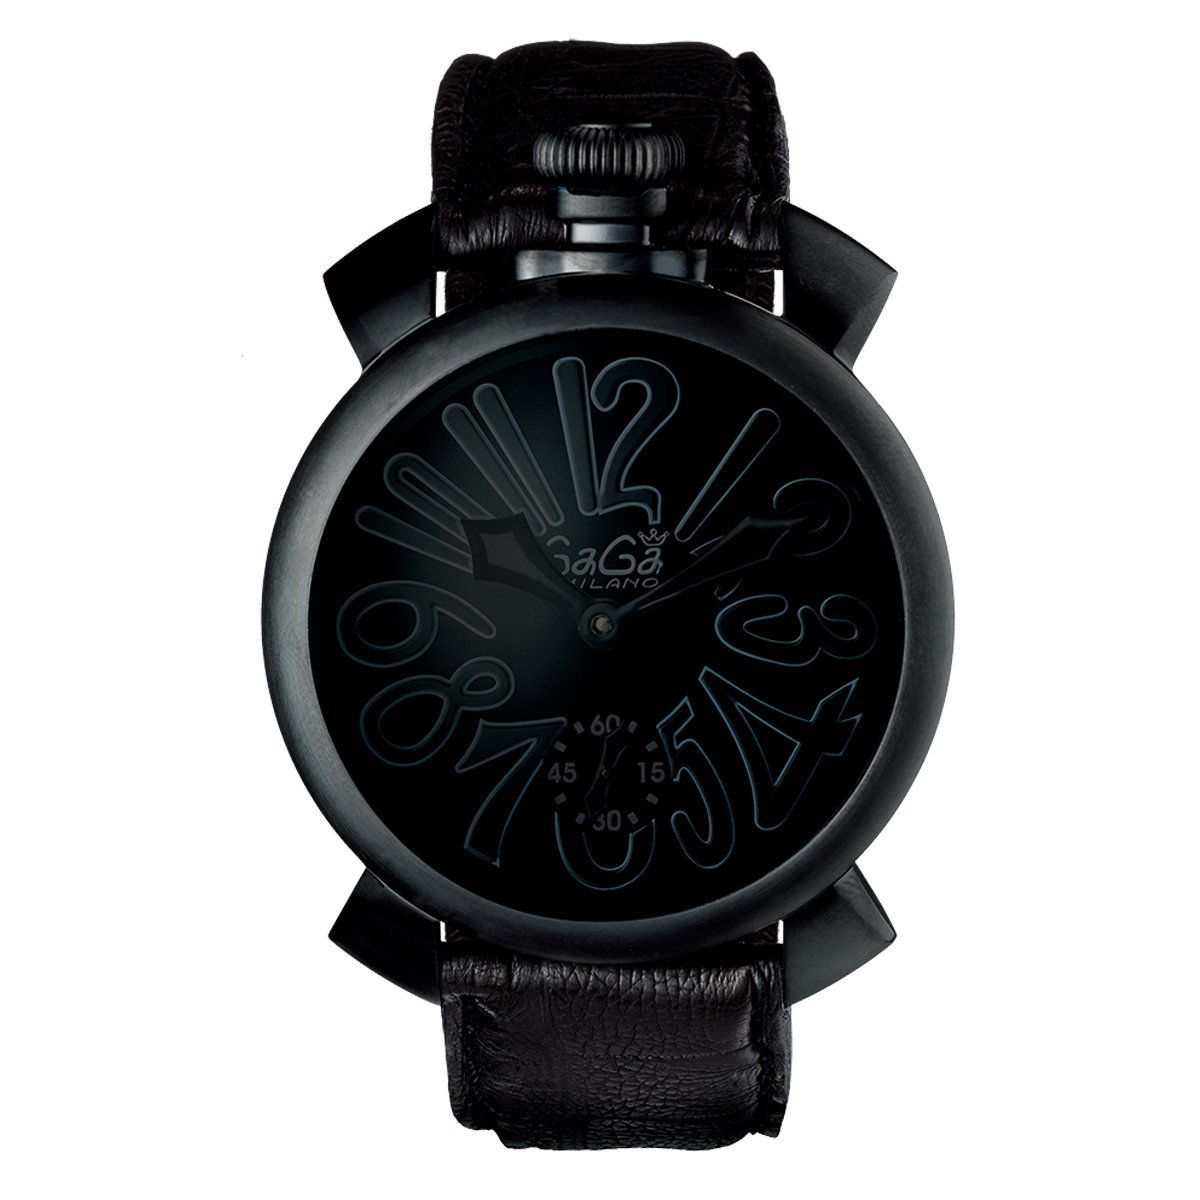 GaGà Milano Manuale 48MM Triple Black - Watches & Crystals